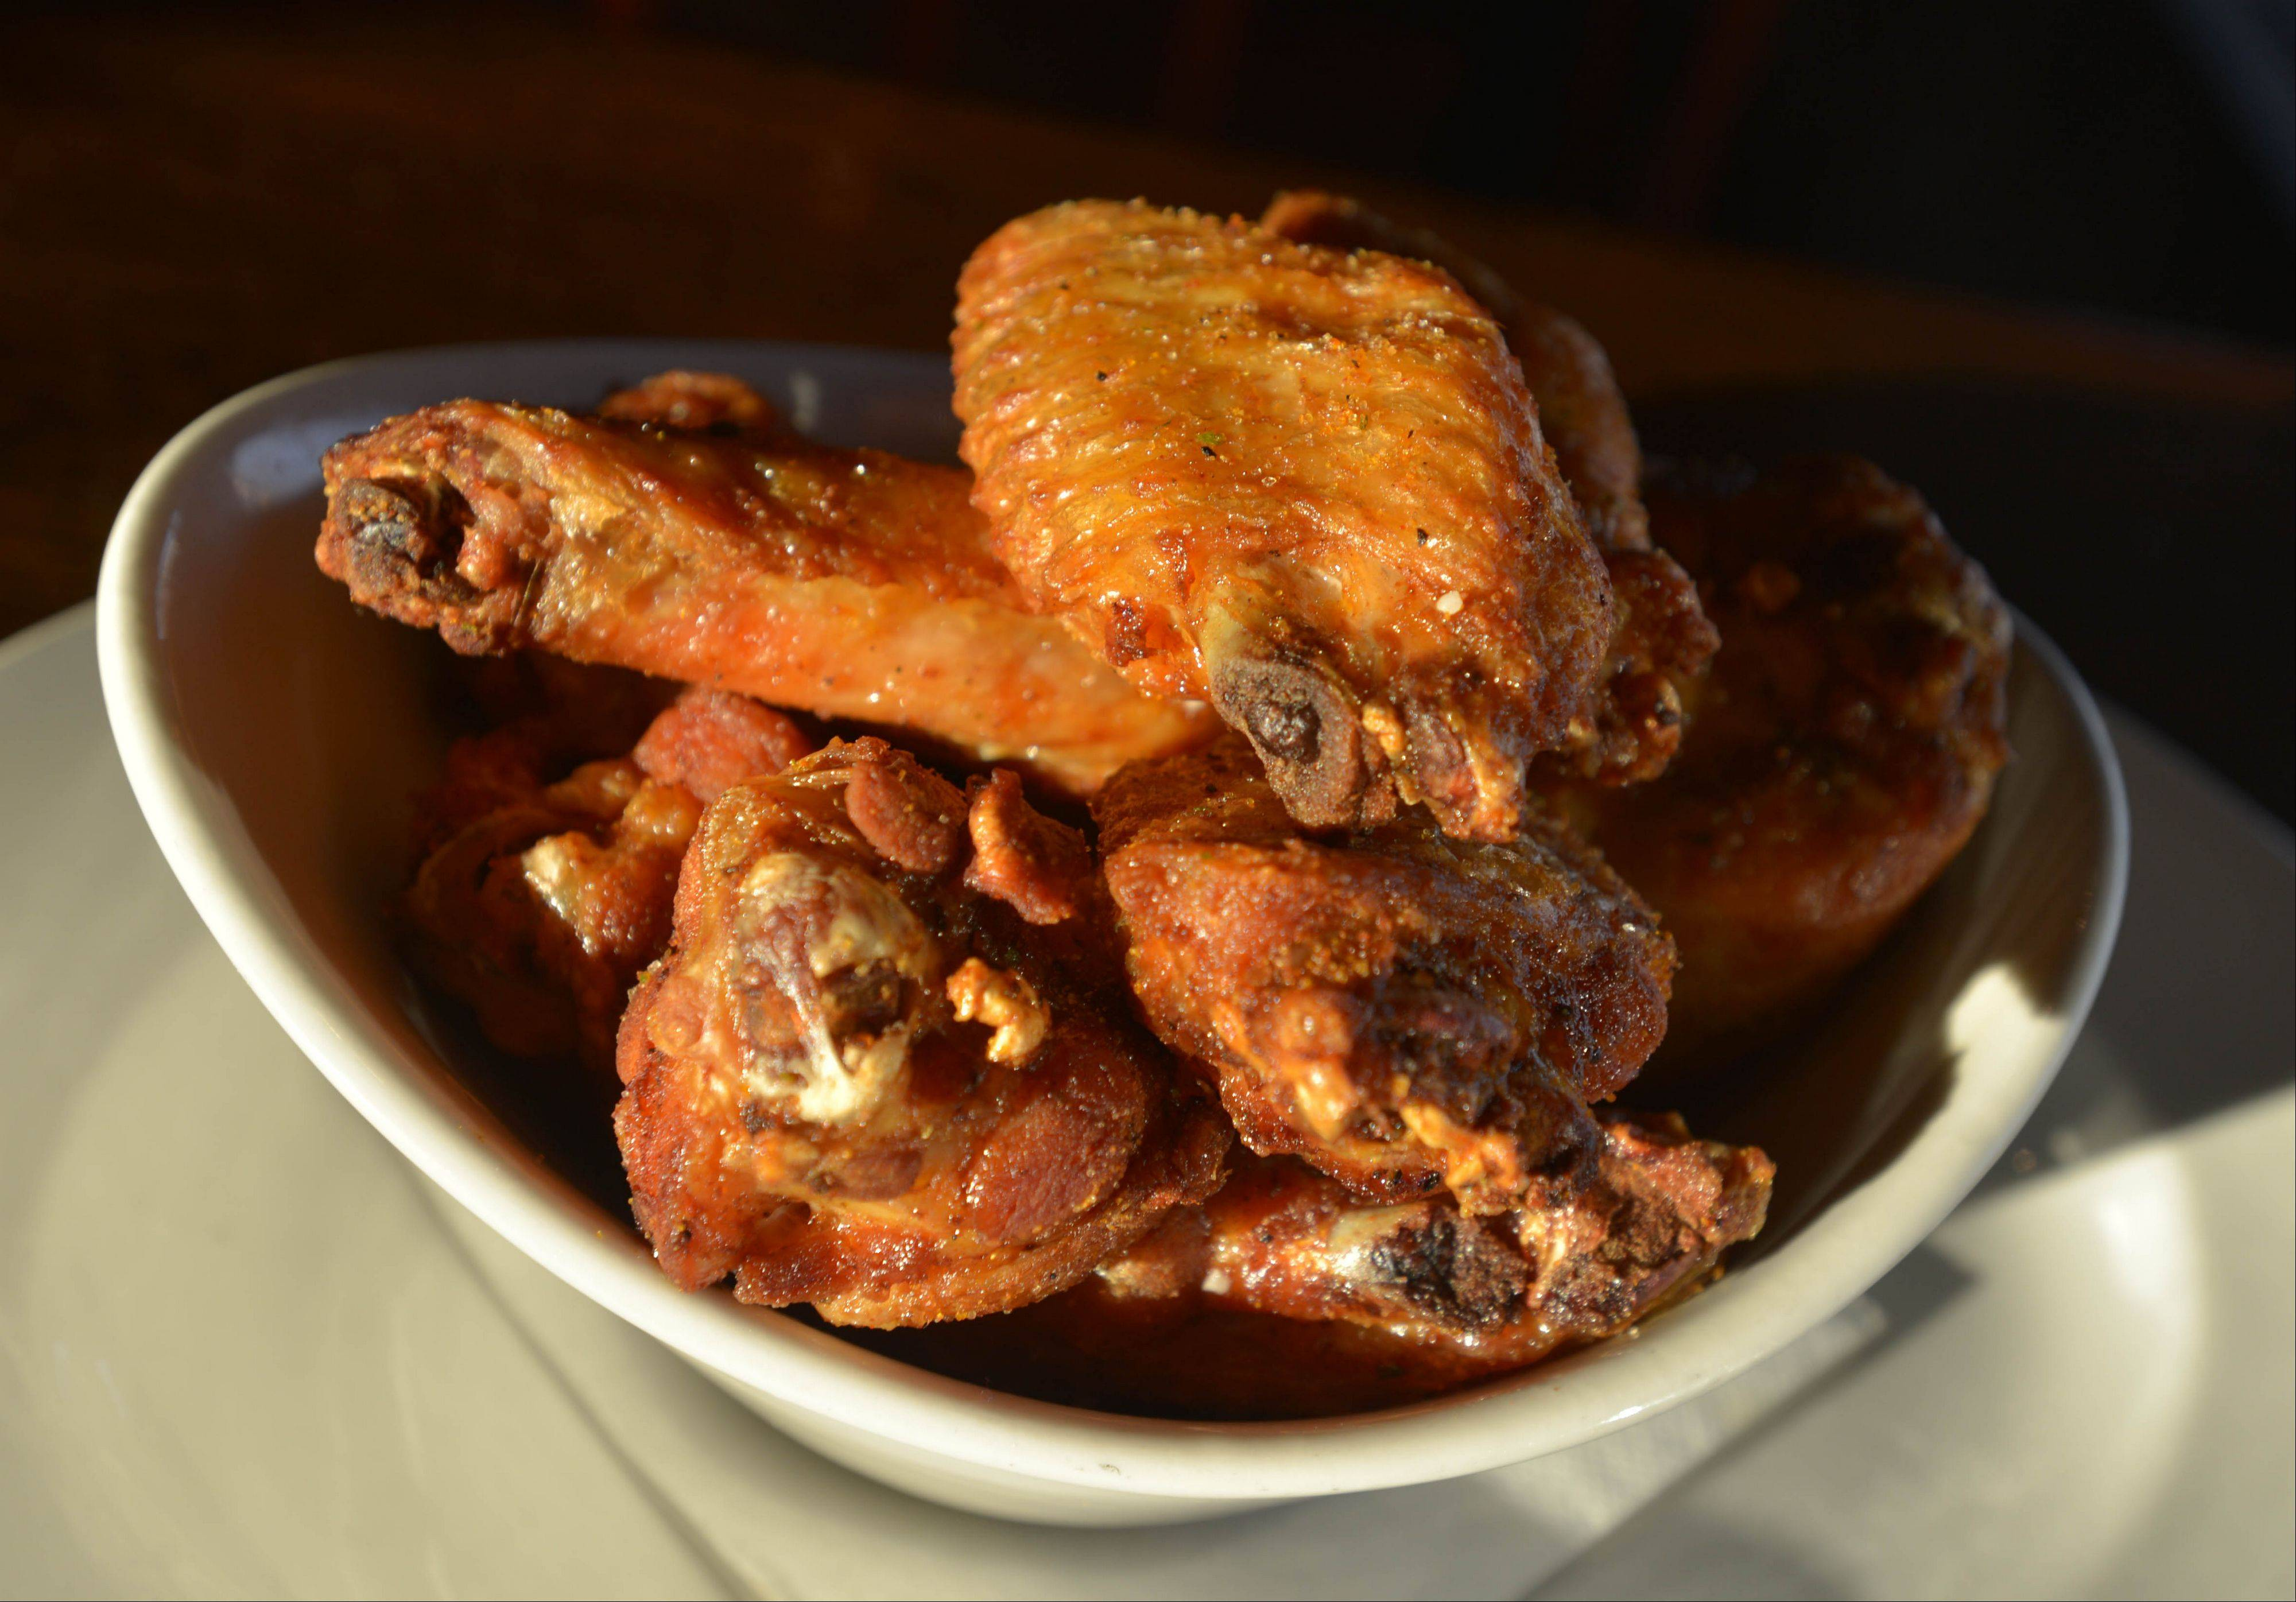 Start a meal at Hopvine with smoked chicken wings.